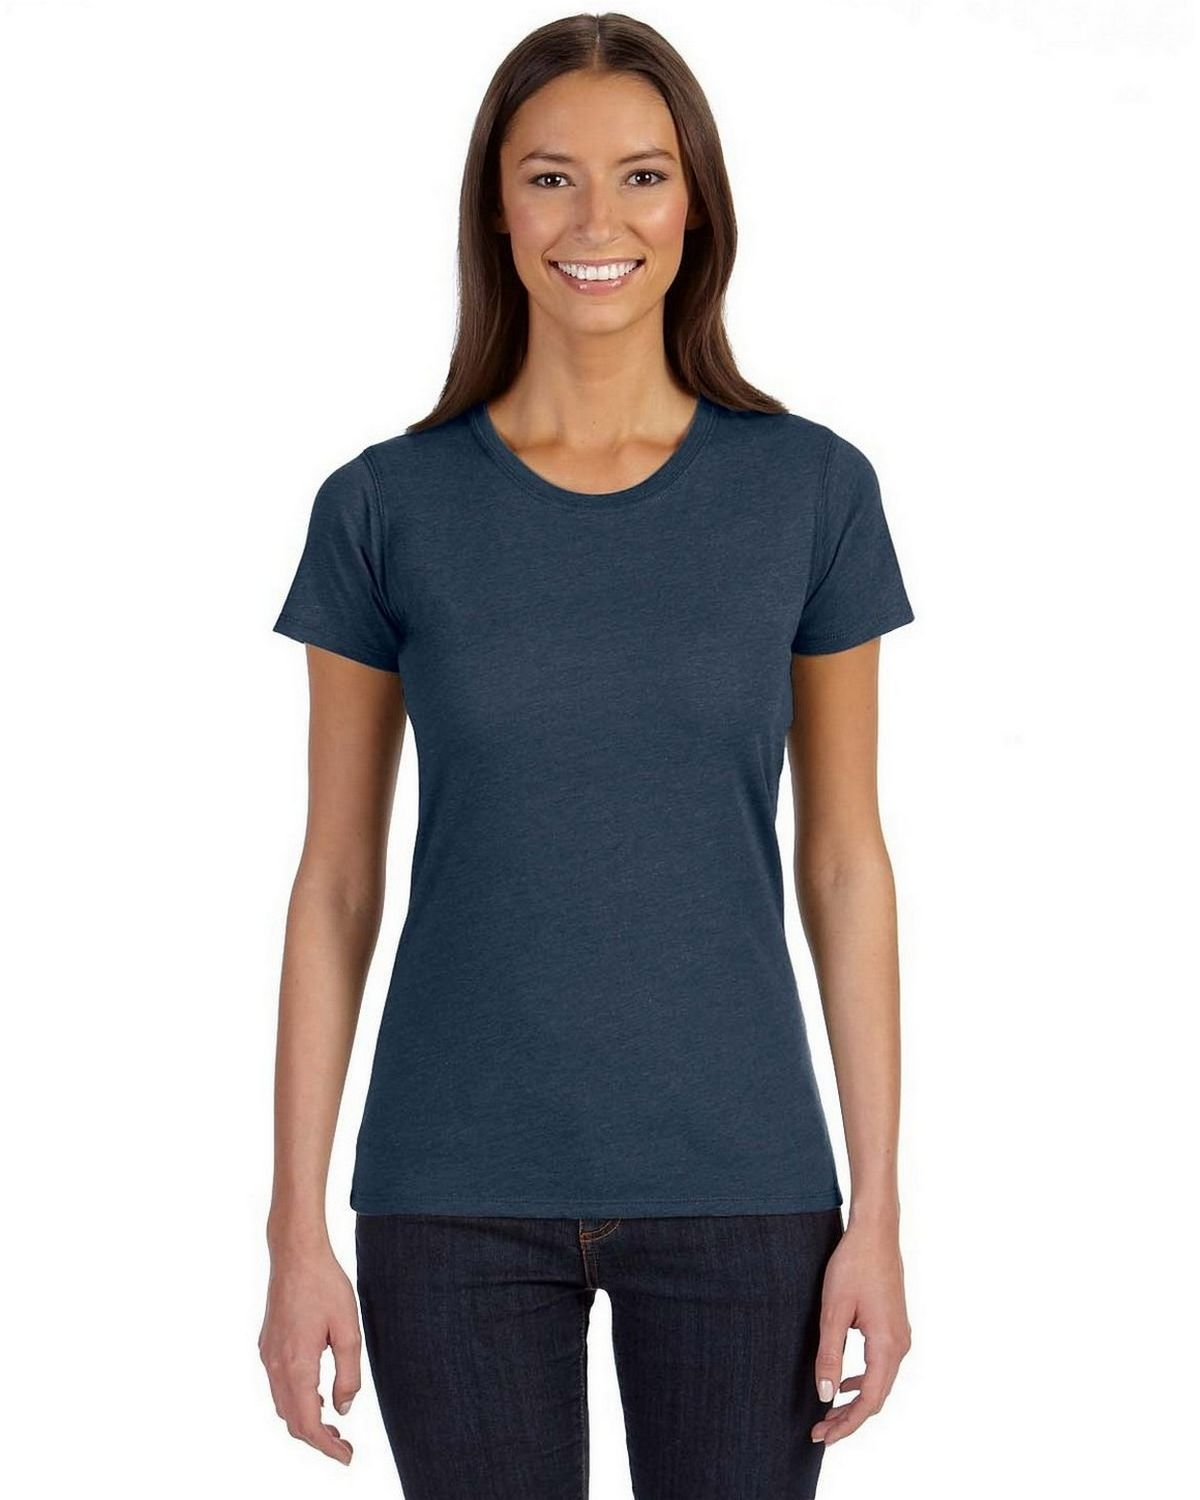 Econscious EC3800 Ladies Blended Eco T Shirt - Water - XL EC3800